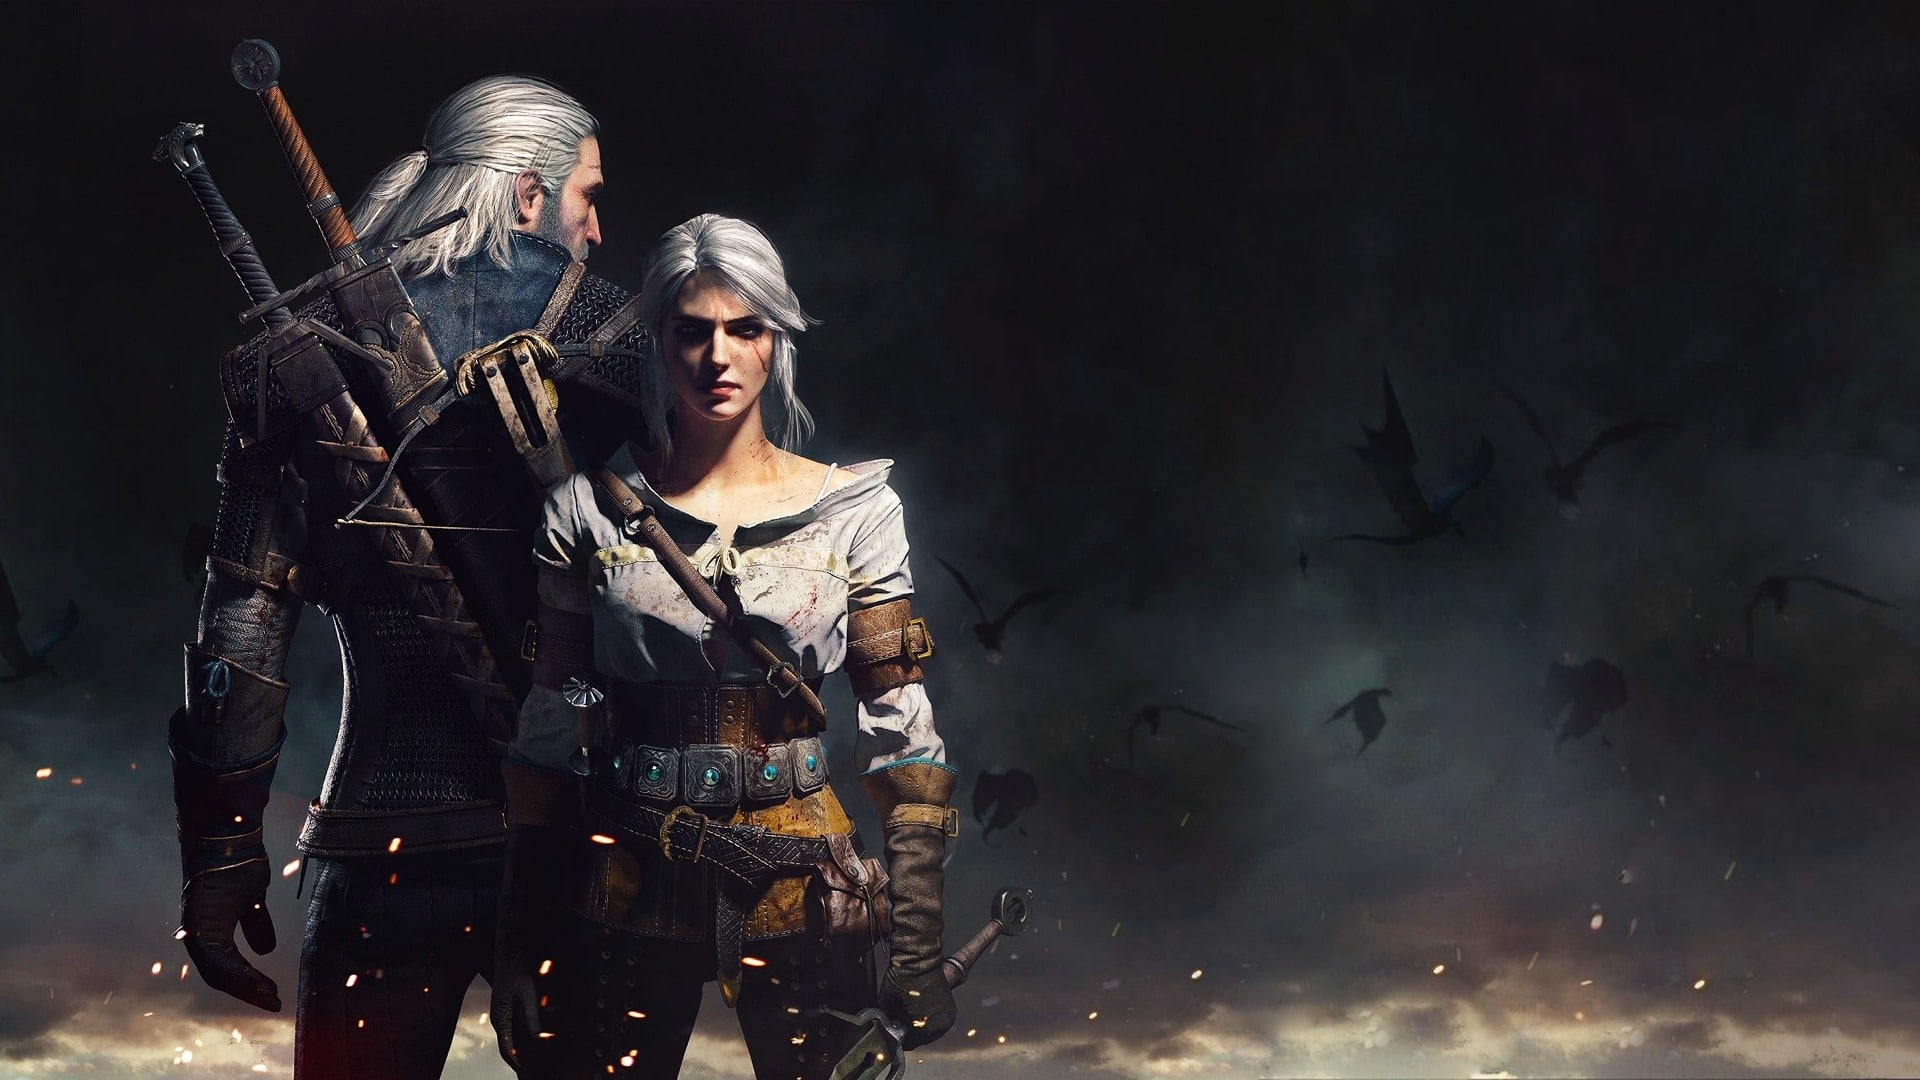 Art - Witcher 3: Wild Hunt, the Арт